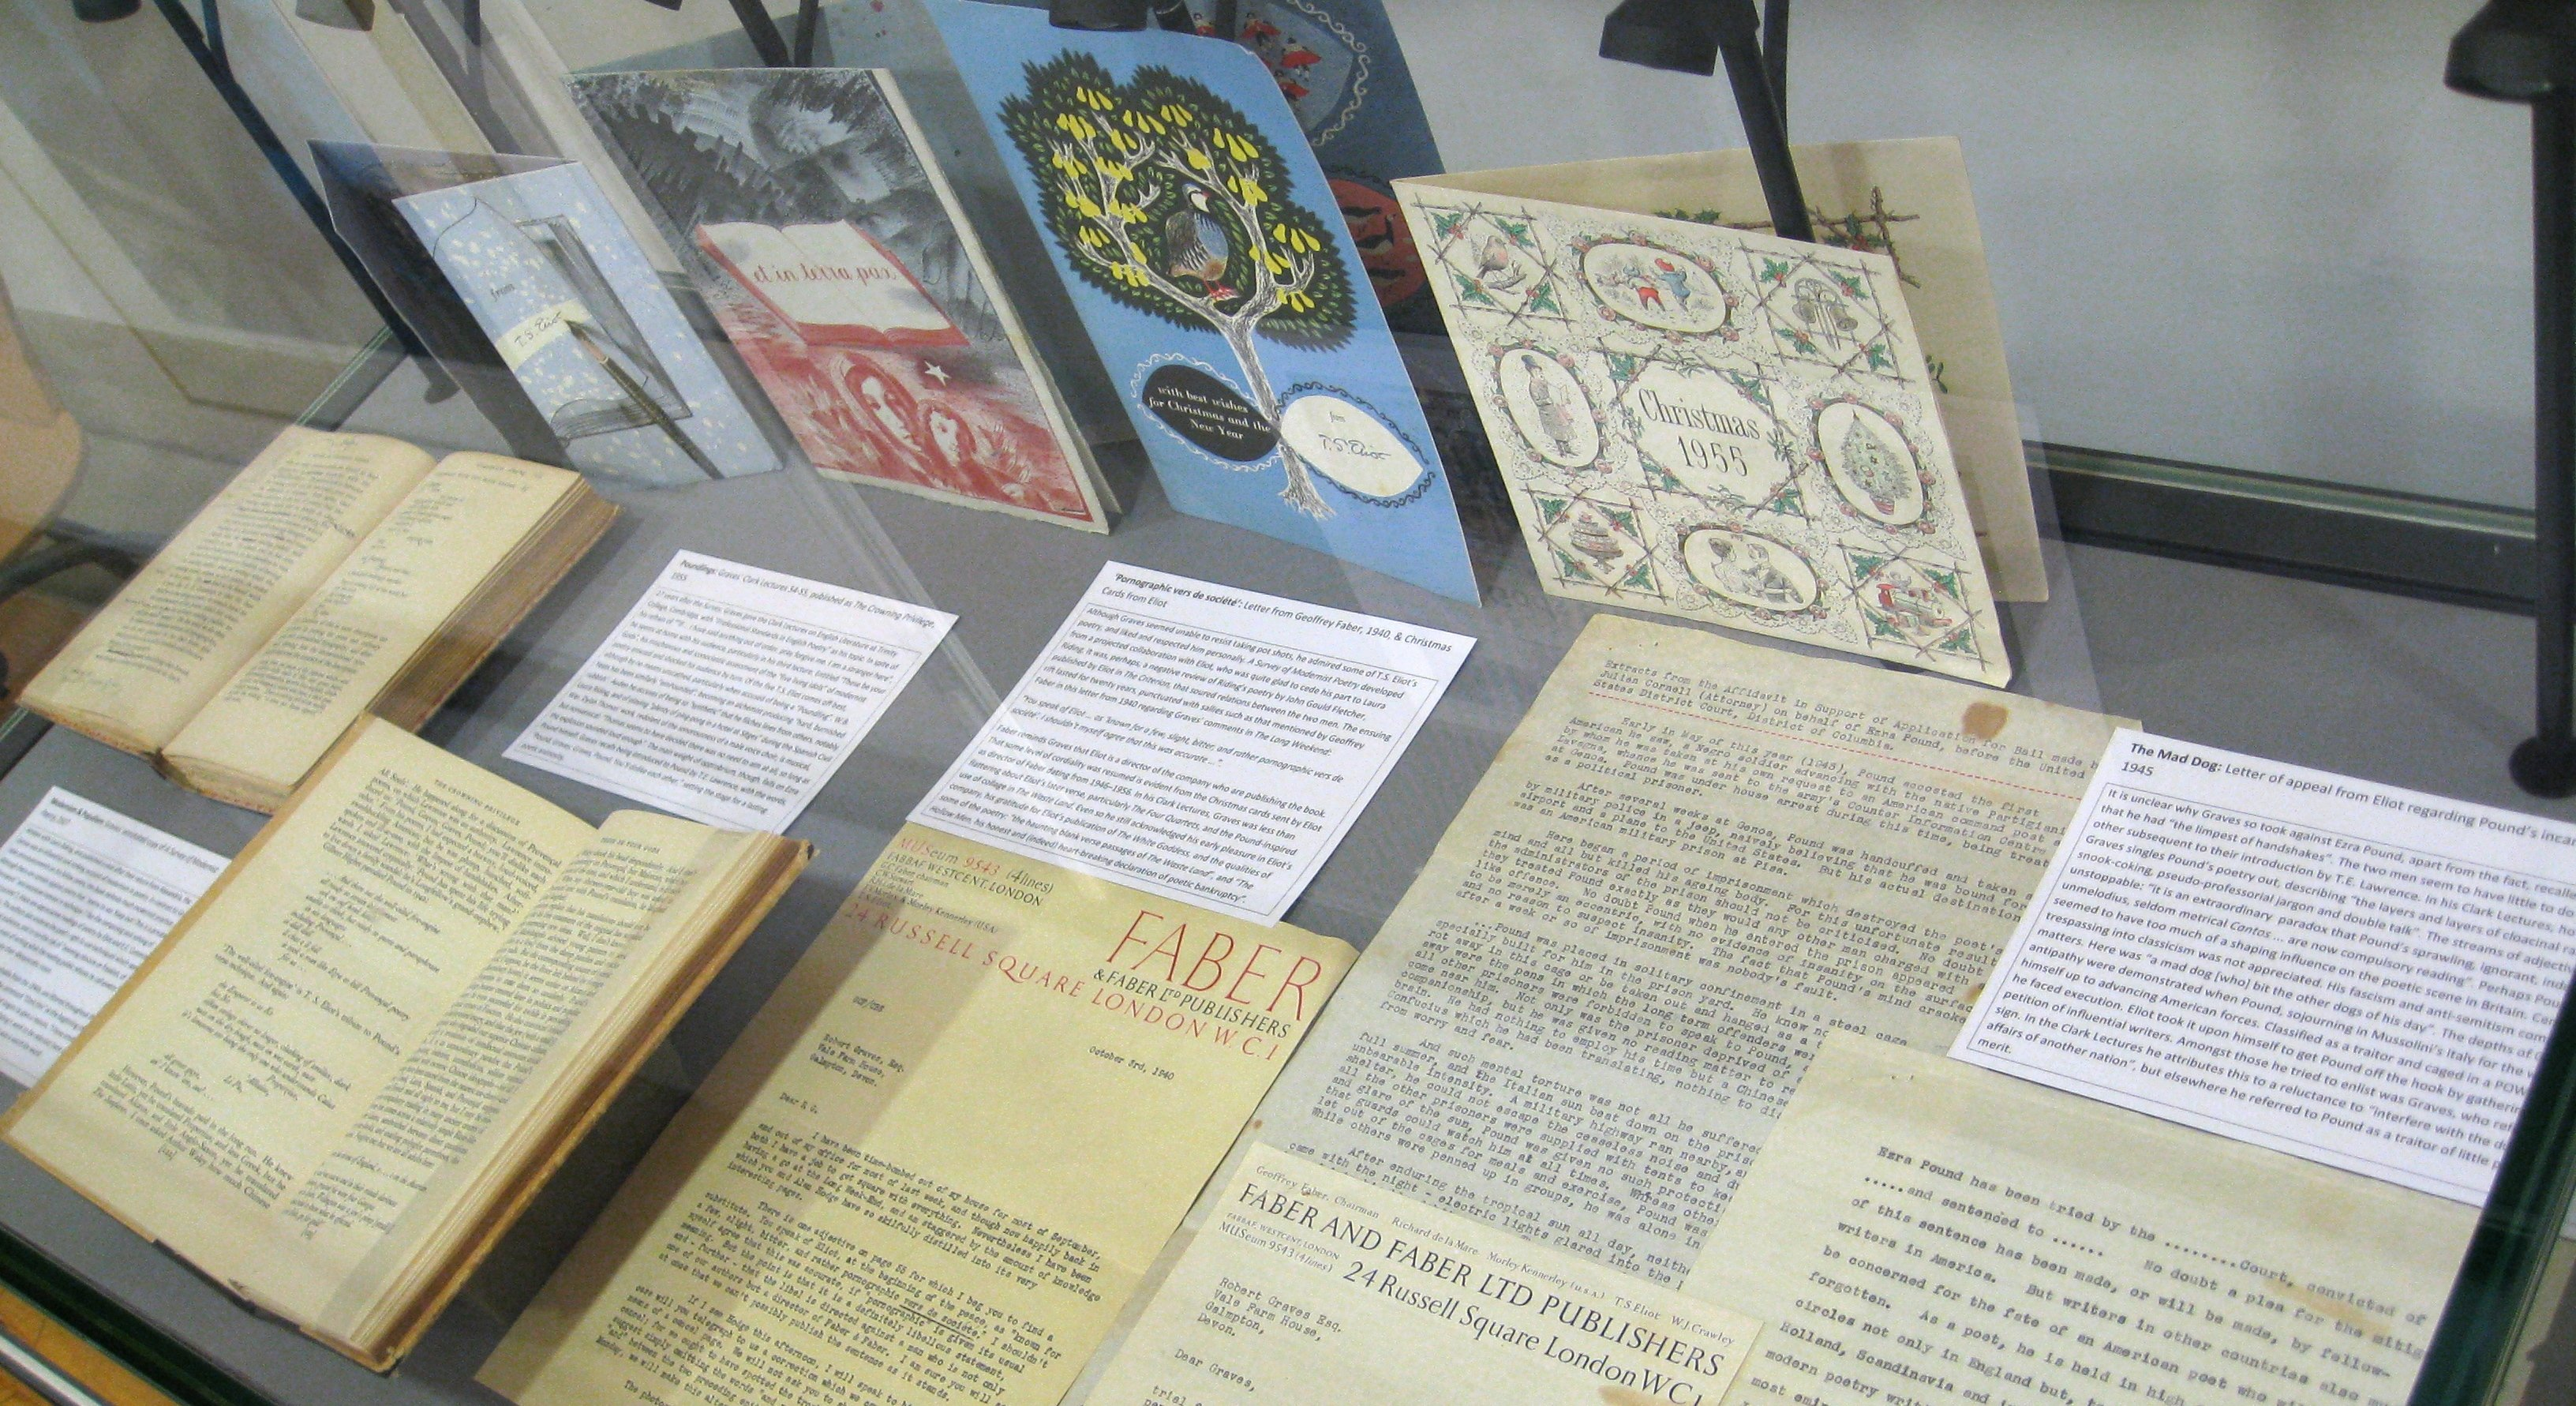 Display of material from the Robert Graves Archive